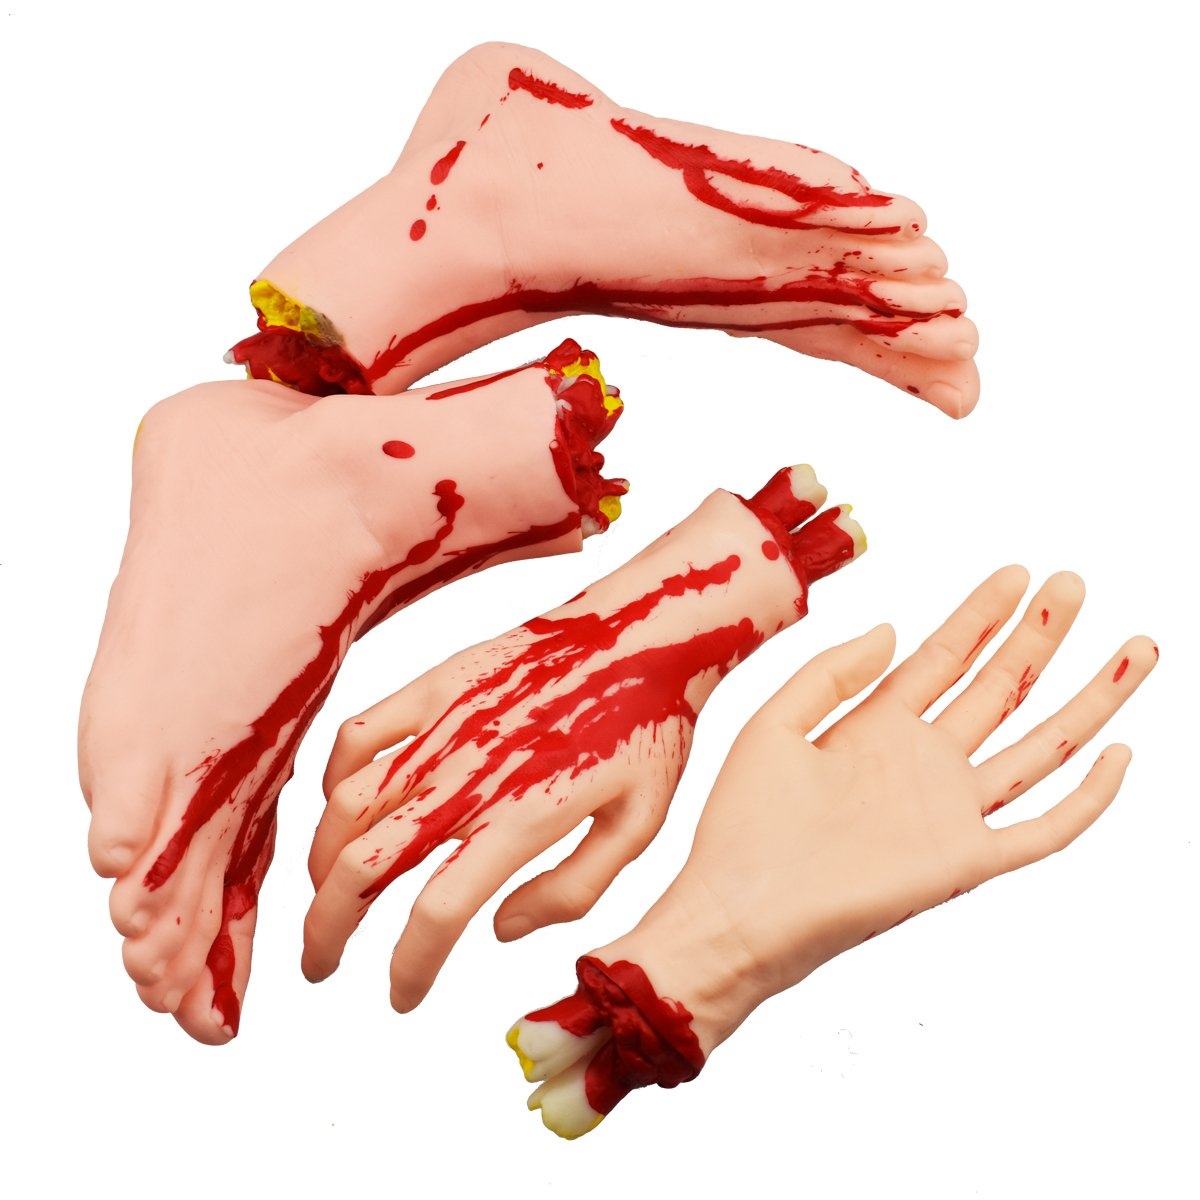 XONOR Halloween Severed Hands Feet Set Scary Bloody Broken Body Parts Halloween Props Decorations, 4 Pieces(Feet & Hands) (Skin Color) by XONOR